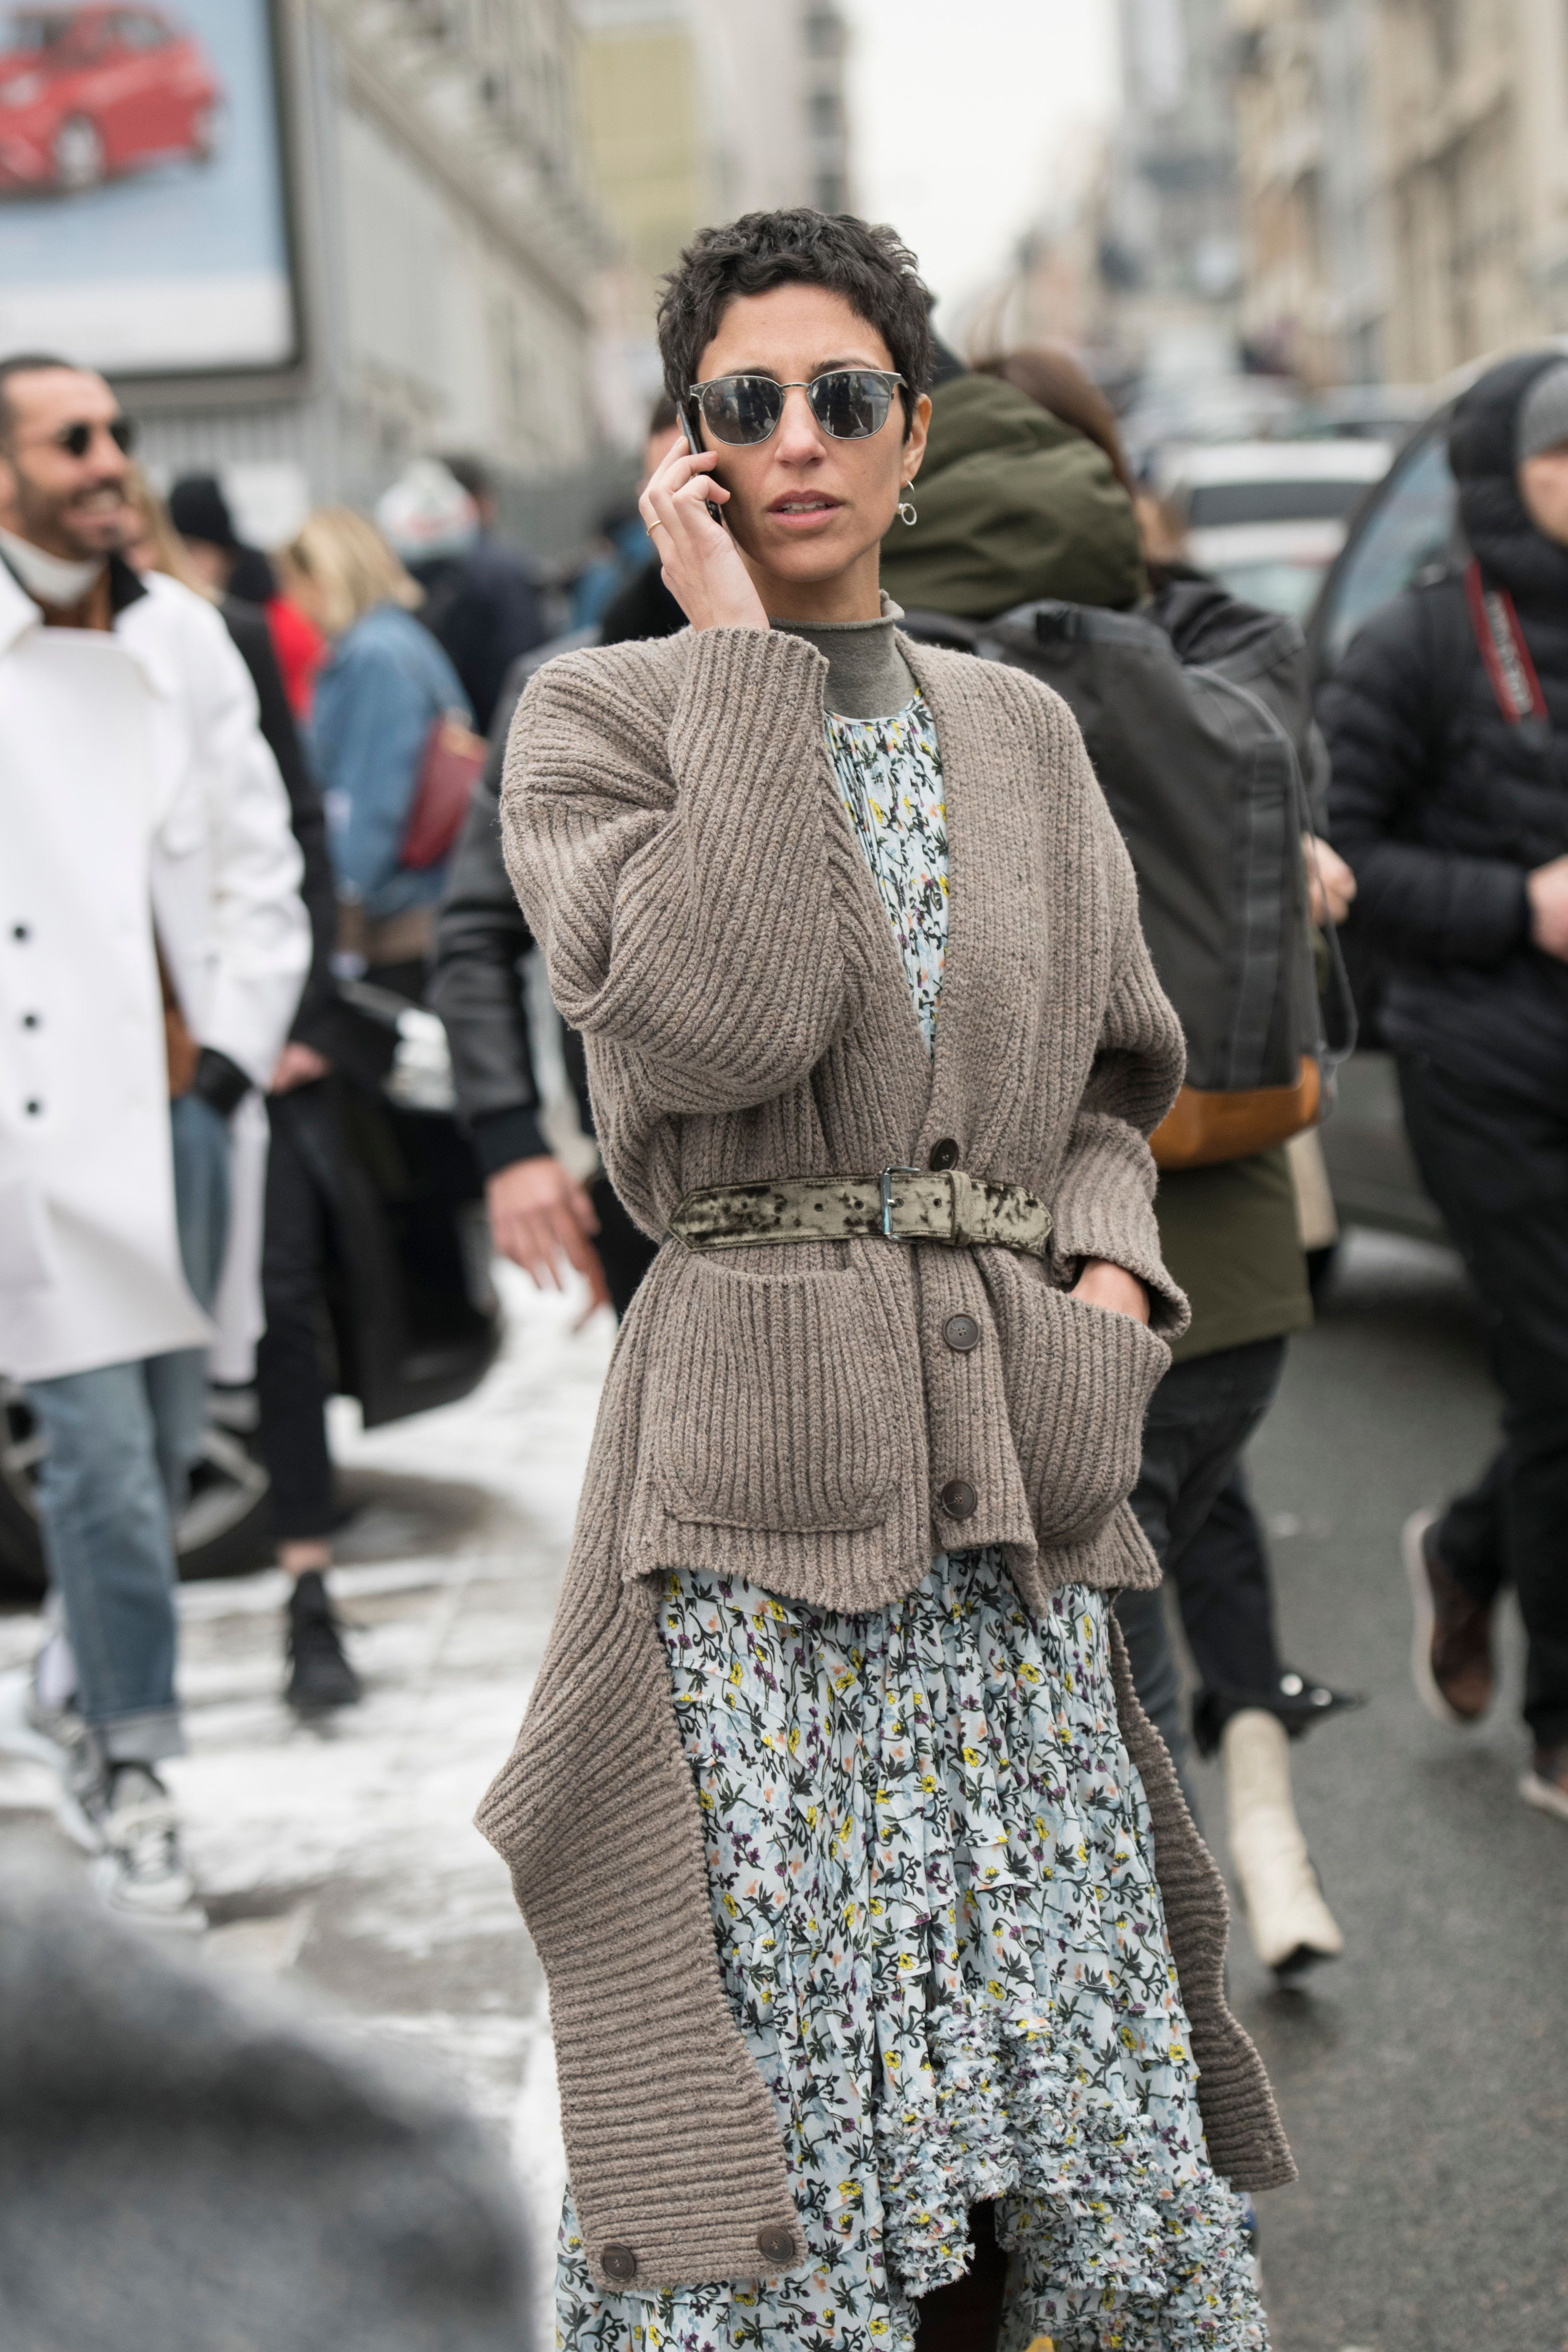 Yasmin Sewell,vice president of style and creative at Farfetch, wears a floral dress wrapped in a belted, chunky cardigan in London.